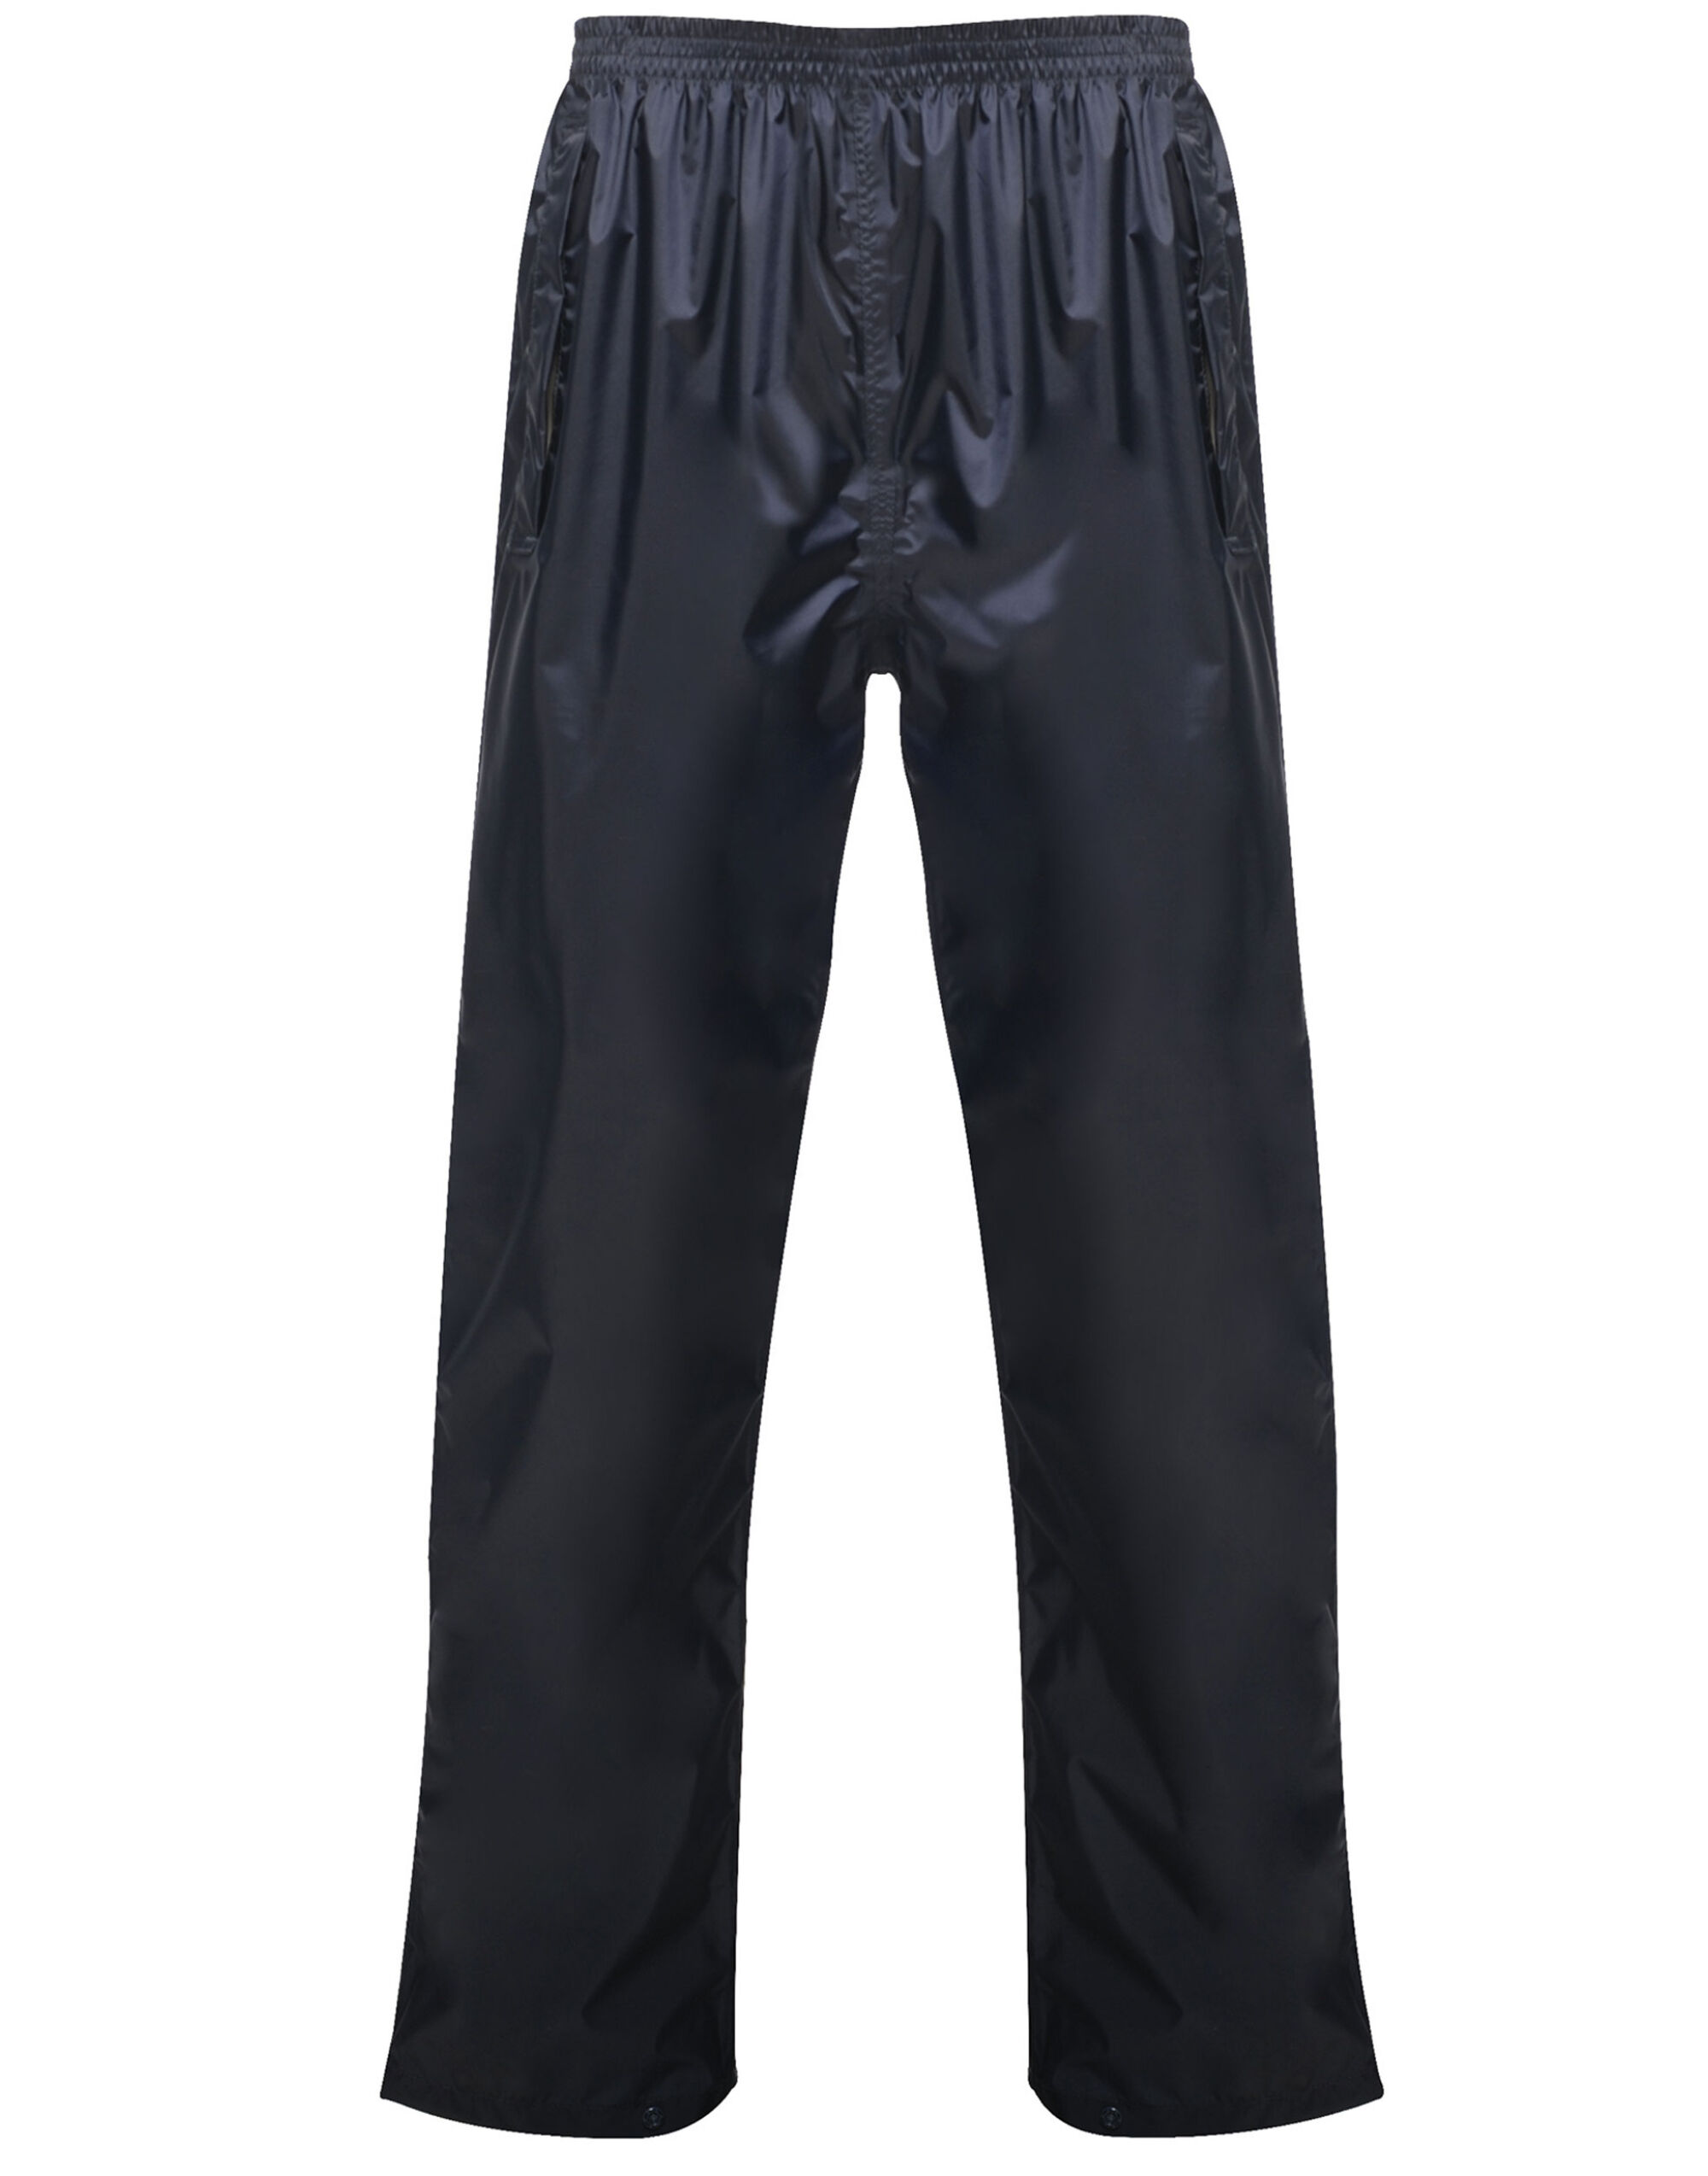 Mens Pro Packaway Trouser